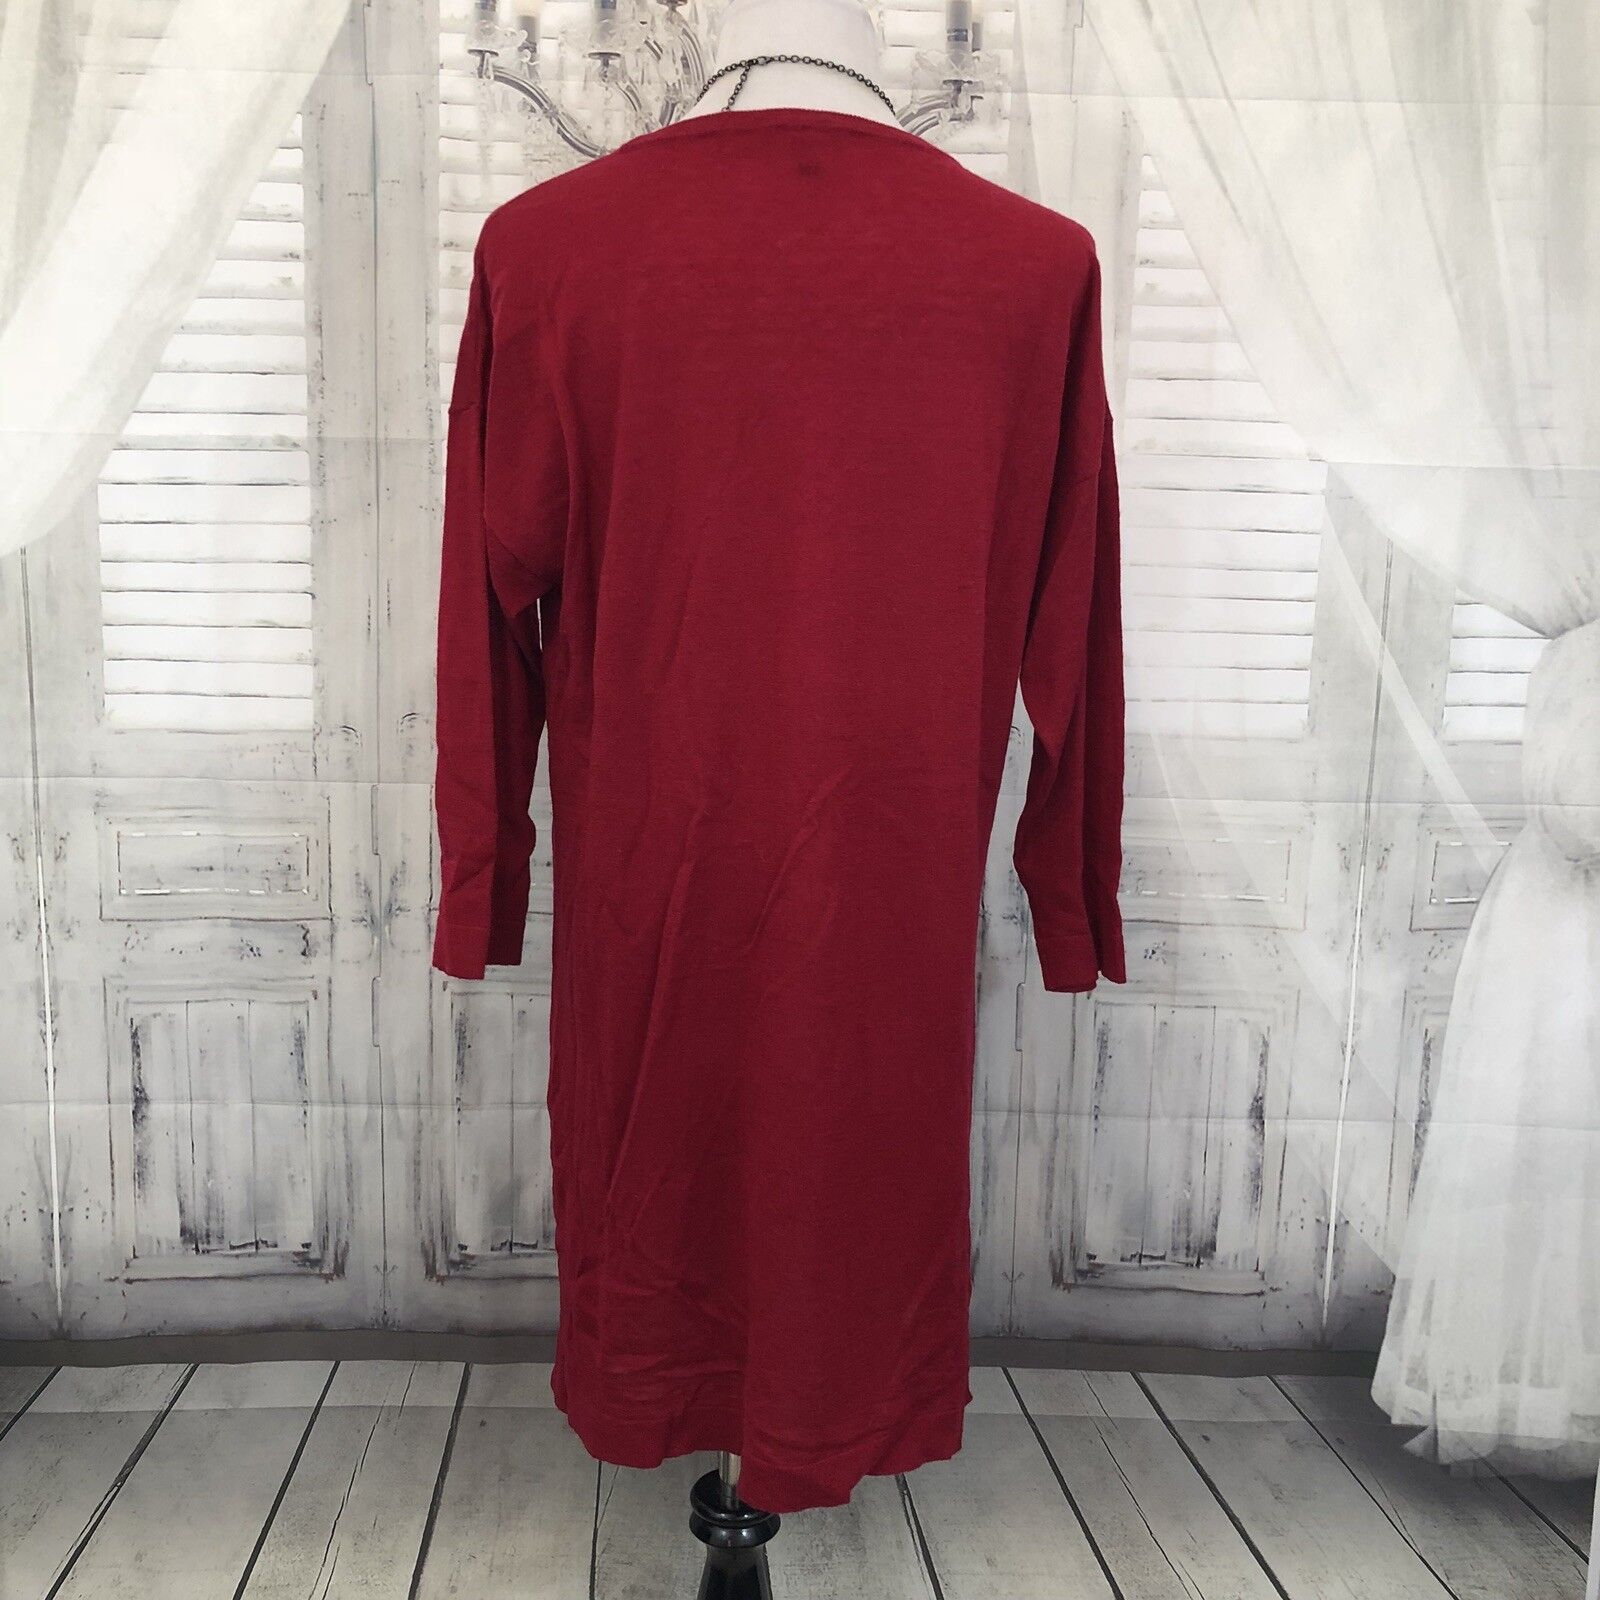 Eileen Fisher S P Small Red Festive Wool Wool Wool Alpaca Tunic Long Sweater Dress B17 98e24f